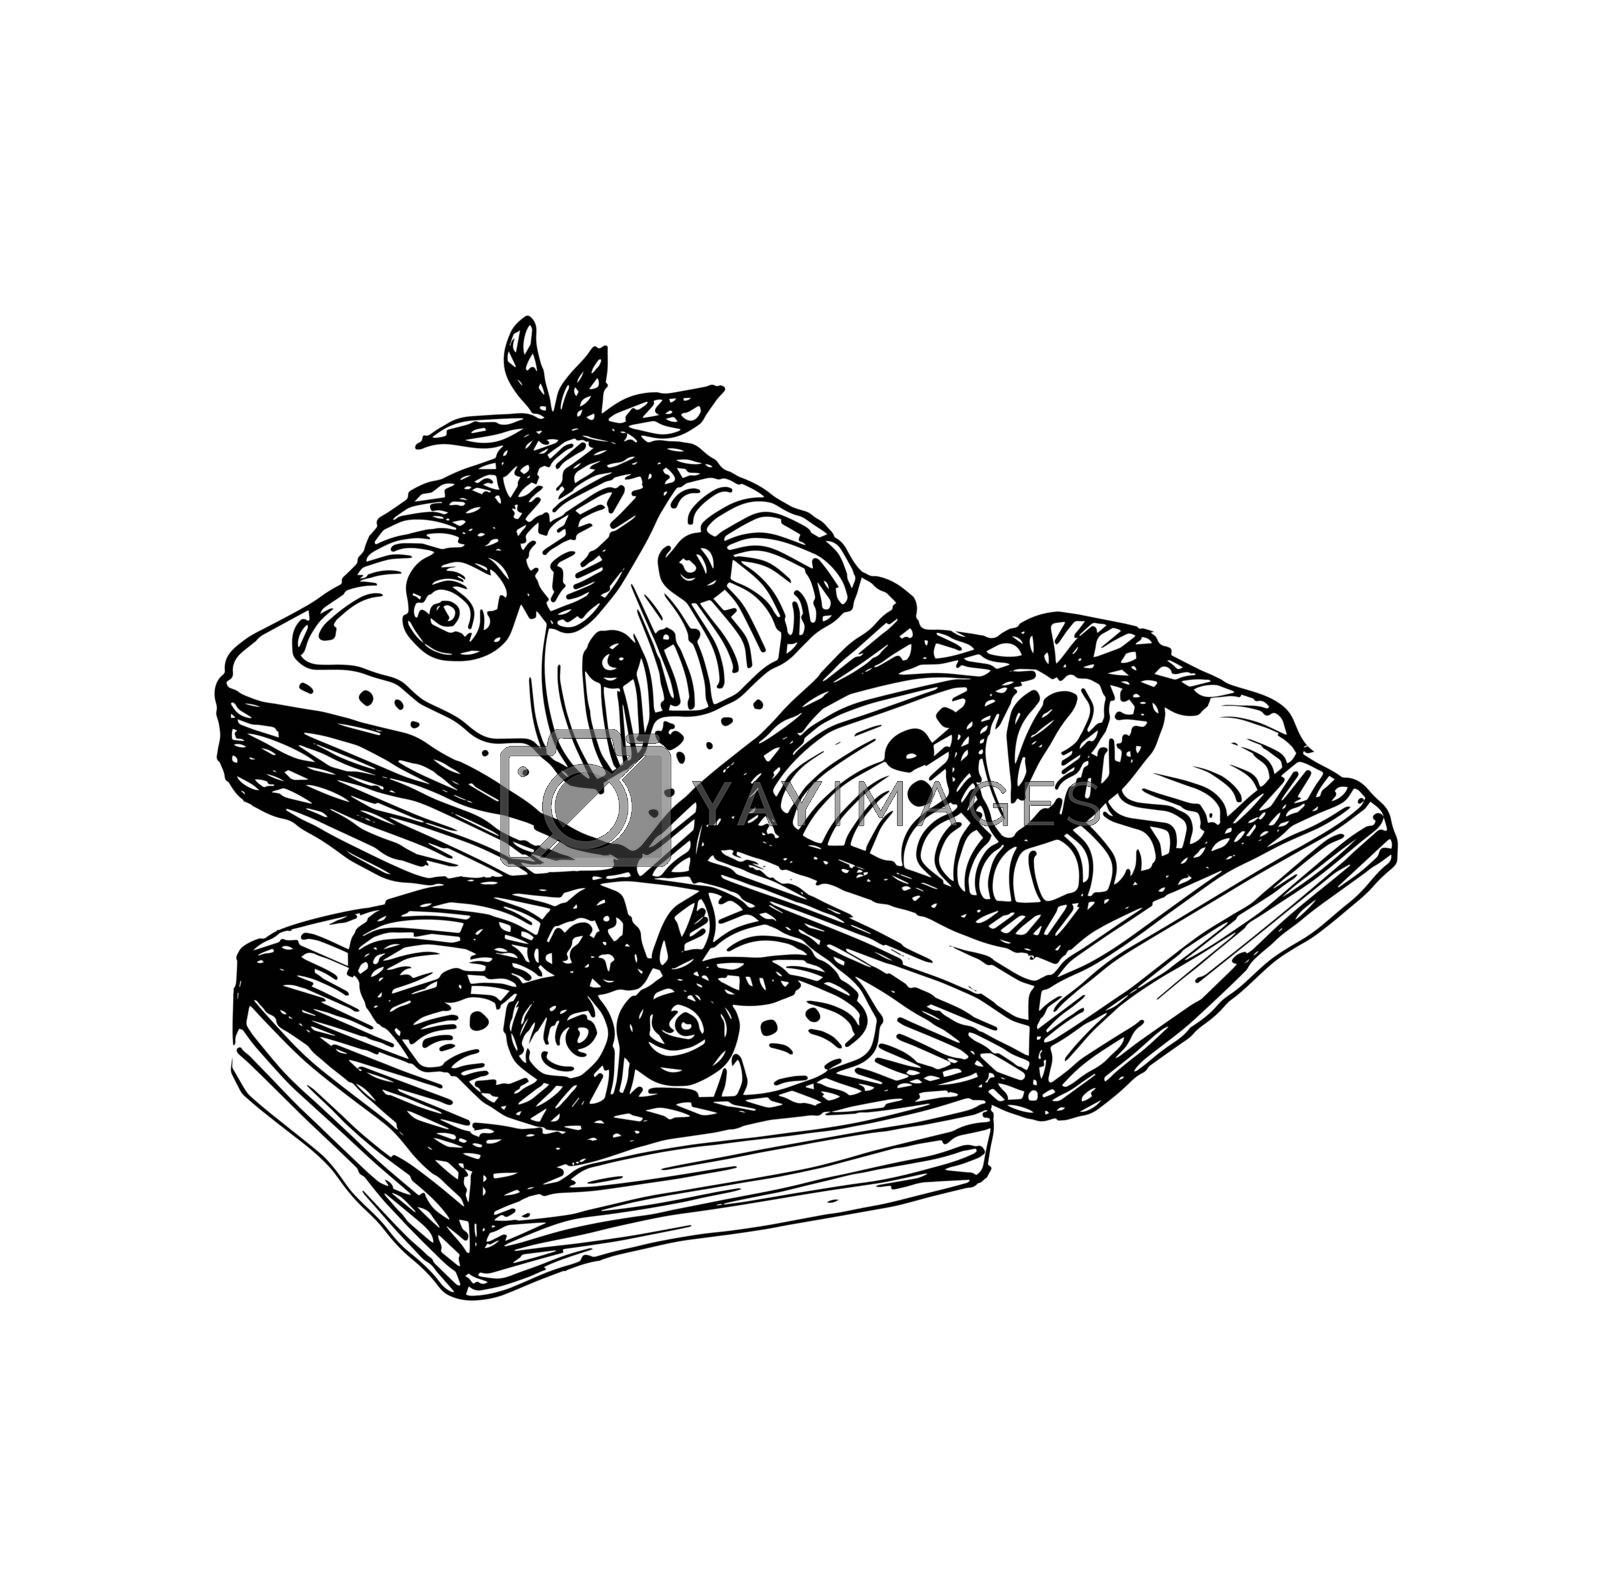 Hand Drawn Sketch of Delicious Pastries with Berries. Vintage Sketch. Great for Banner, Label, Poster